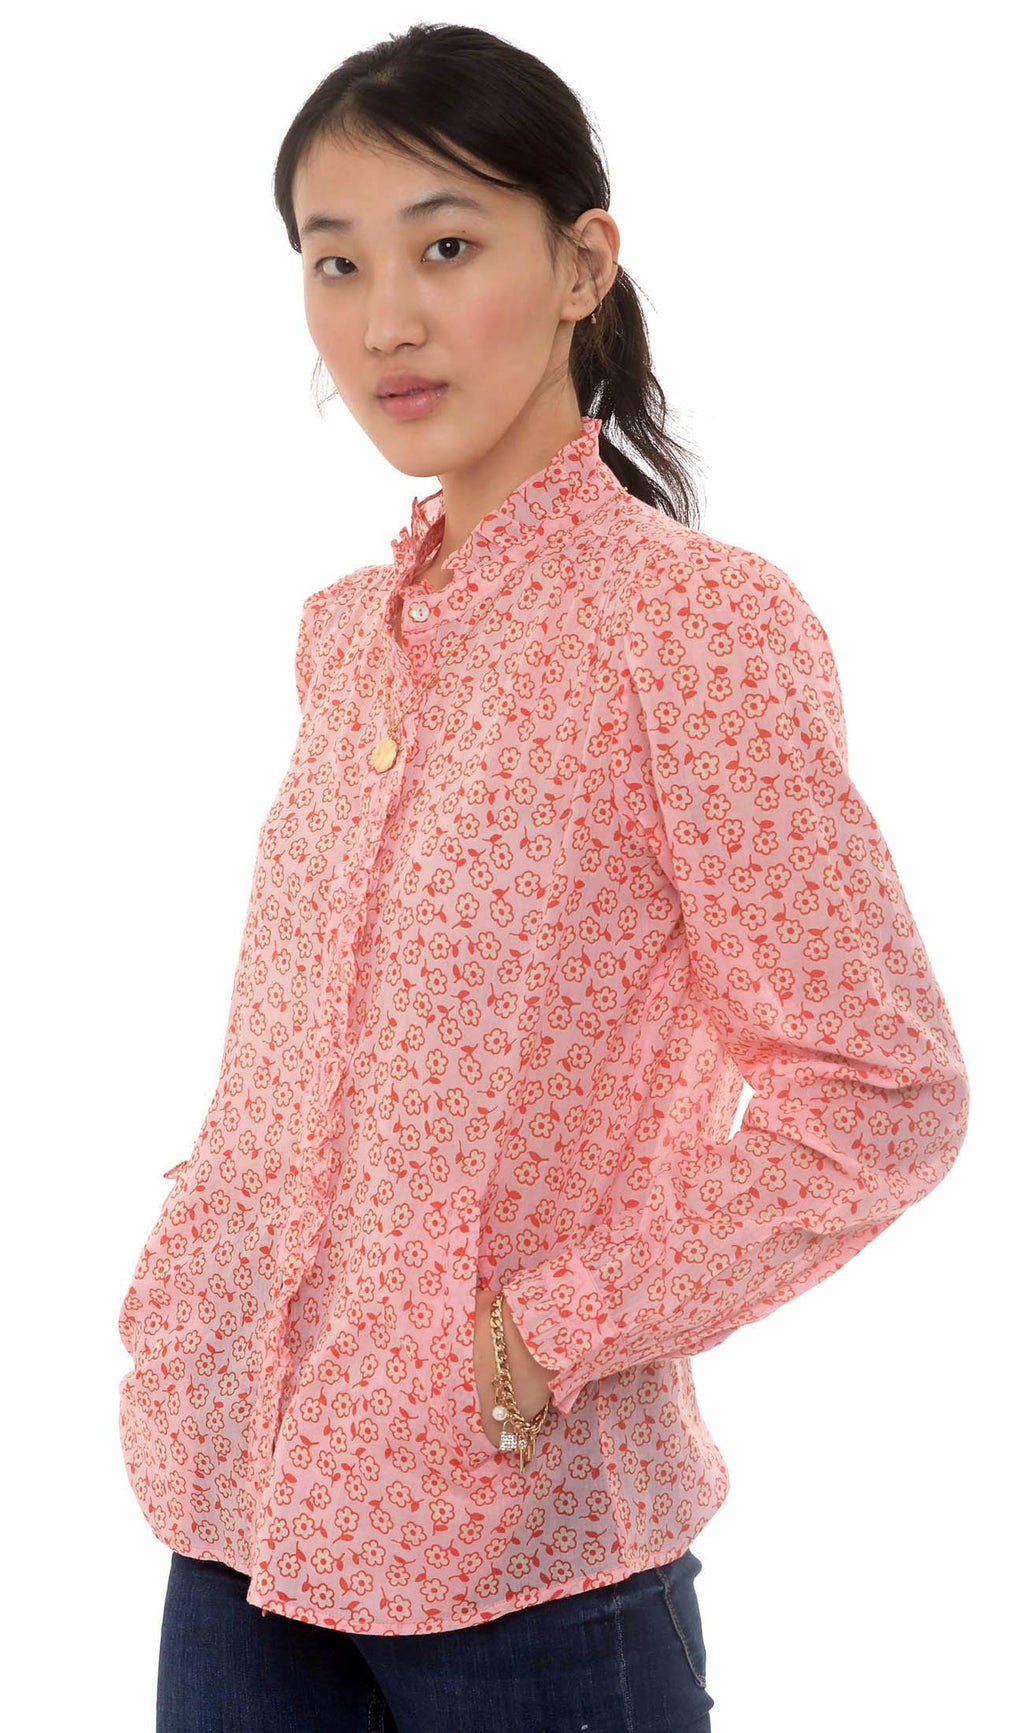 Chrissie Shirt, Scattered Daisy 100% Organic Cotton Voile